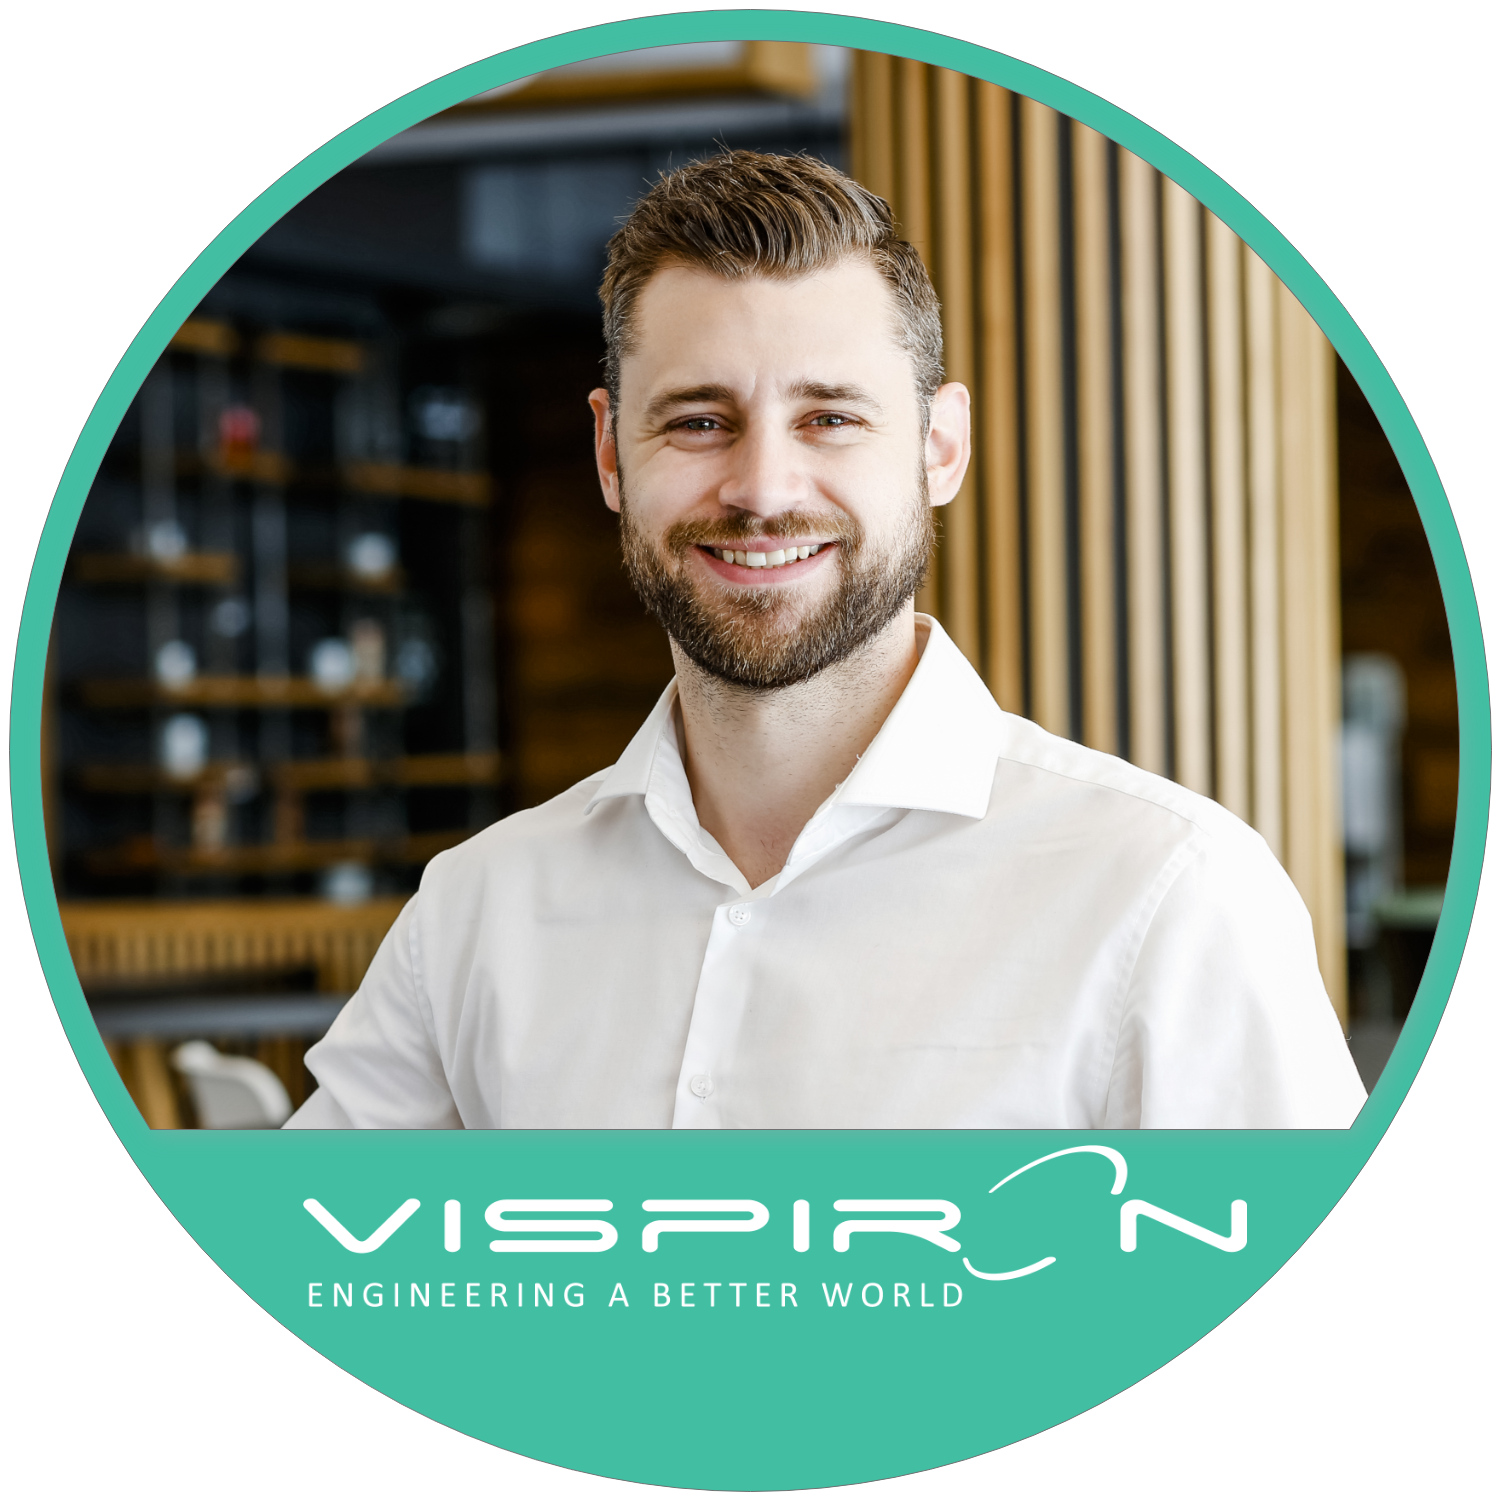 VISPIRON SYSTEMS Philipp Köke Teamleiter Project Solutions Blogautor für das Thema Qualitätsmanagement / Projektmanagement / Prozessmanagement